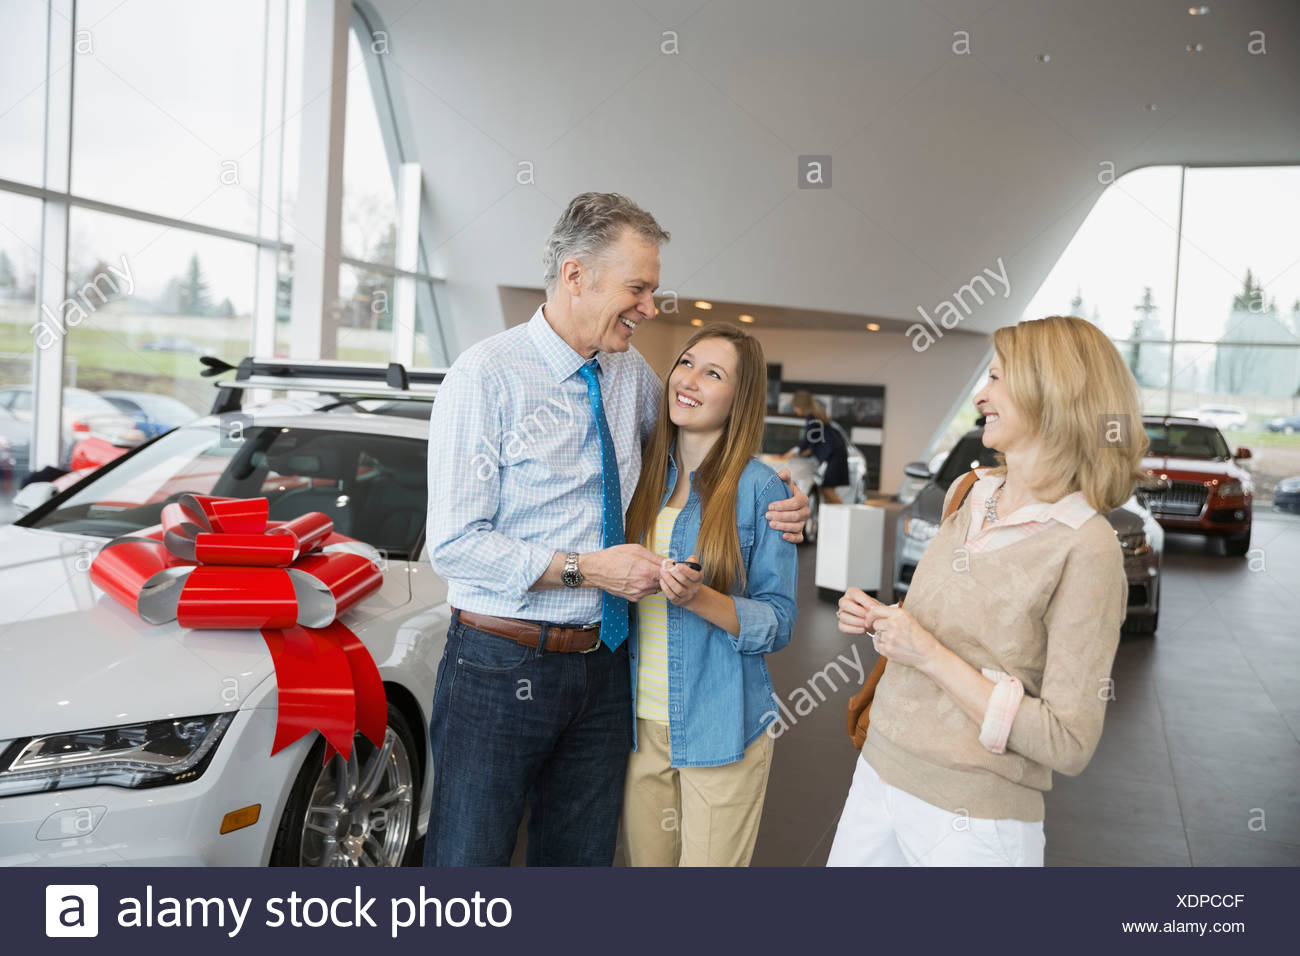 Parents buying daughter car in dealership showroom - Stock Image